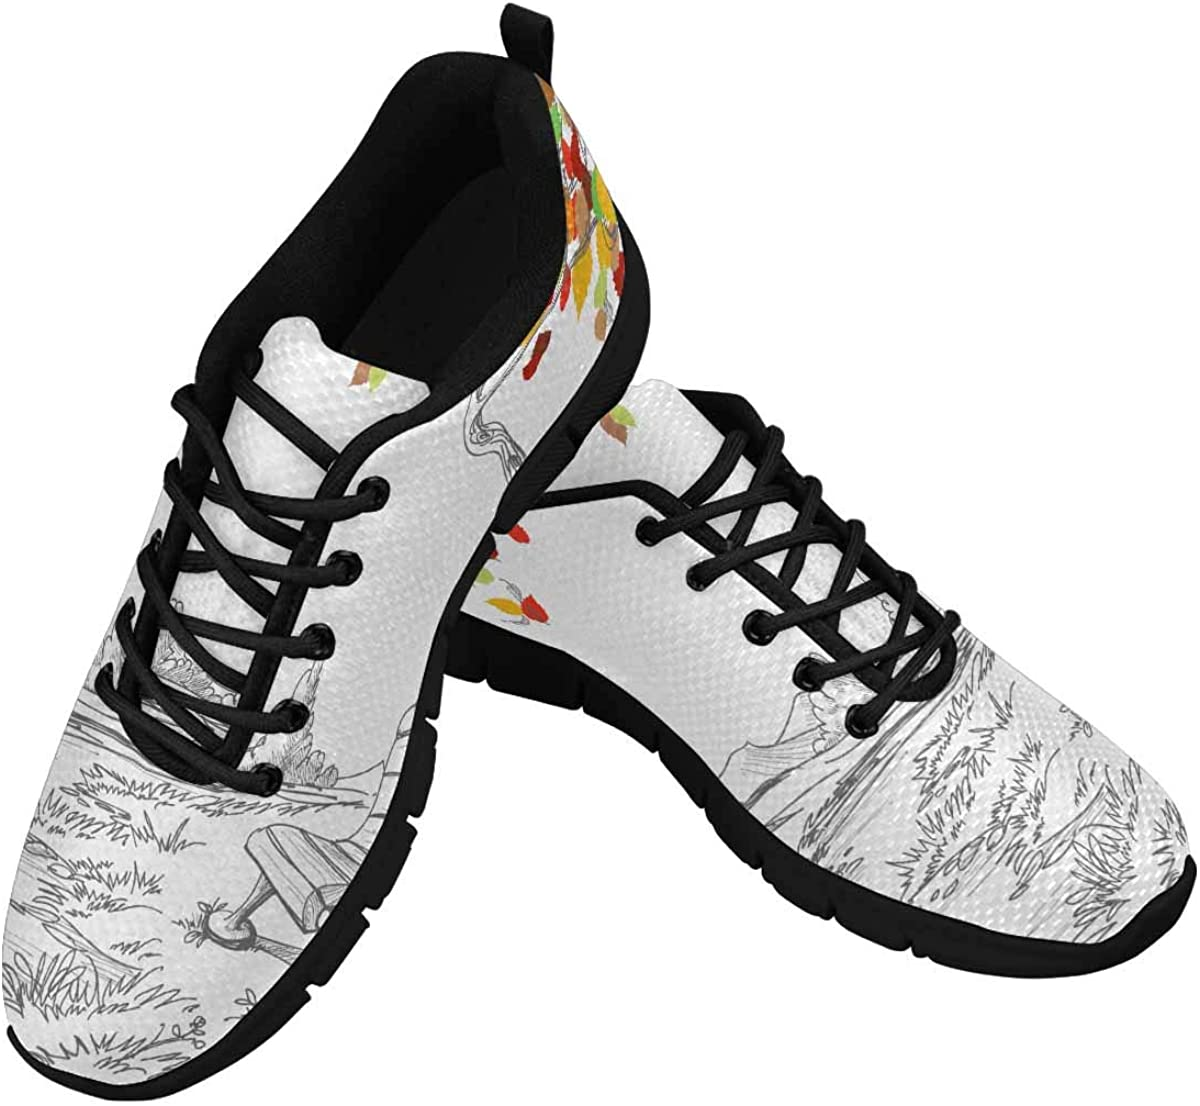 INTERESTPRINT Autumn Tree, Falling Leaves Women's Lace Up Running Comfort Sports Sneakers